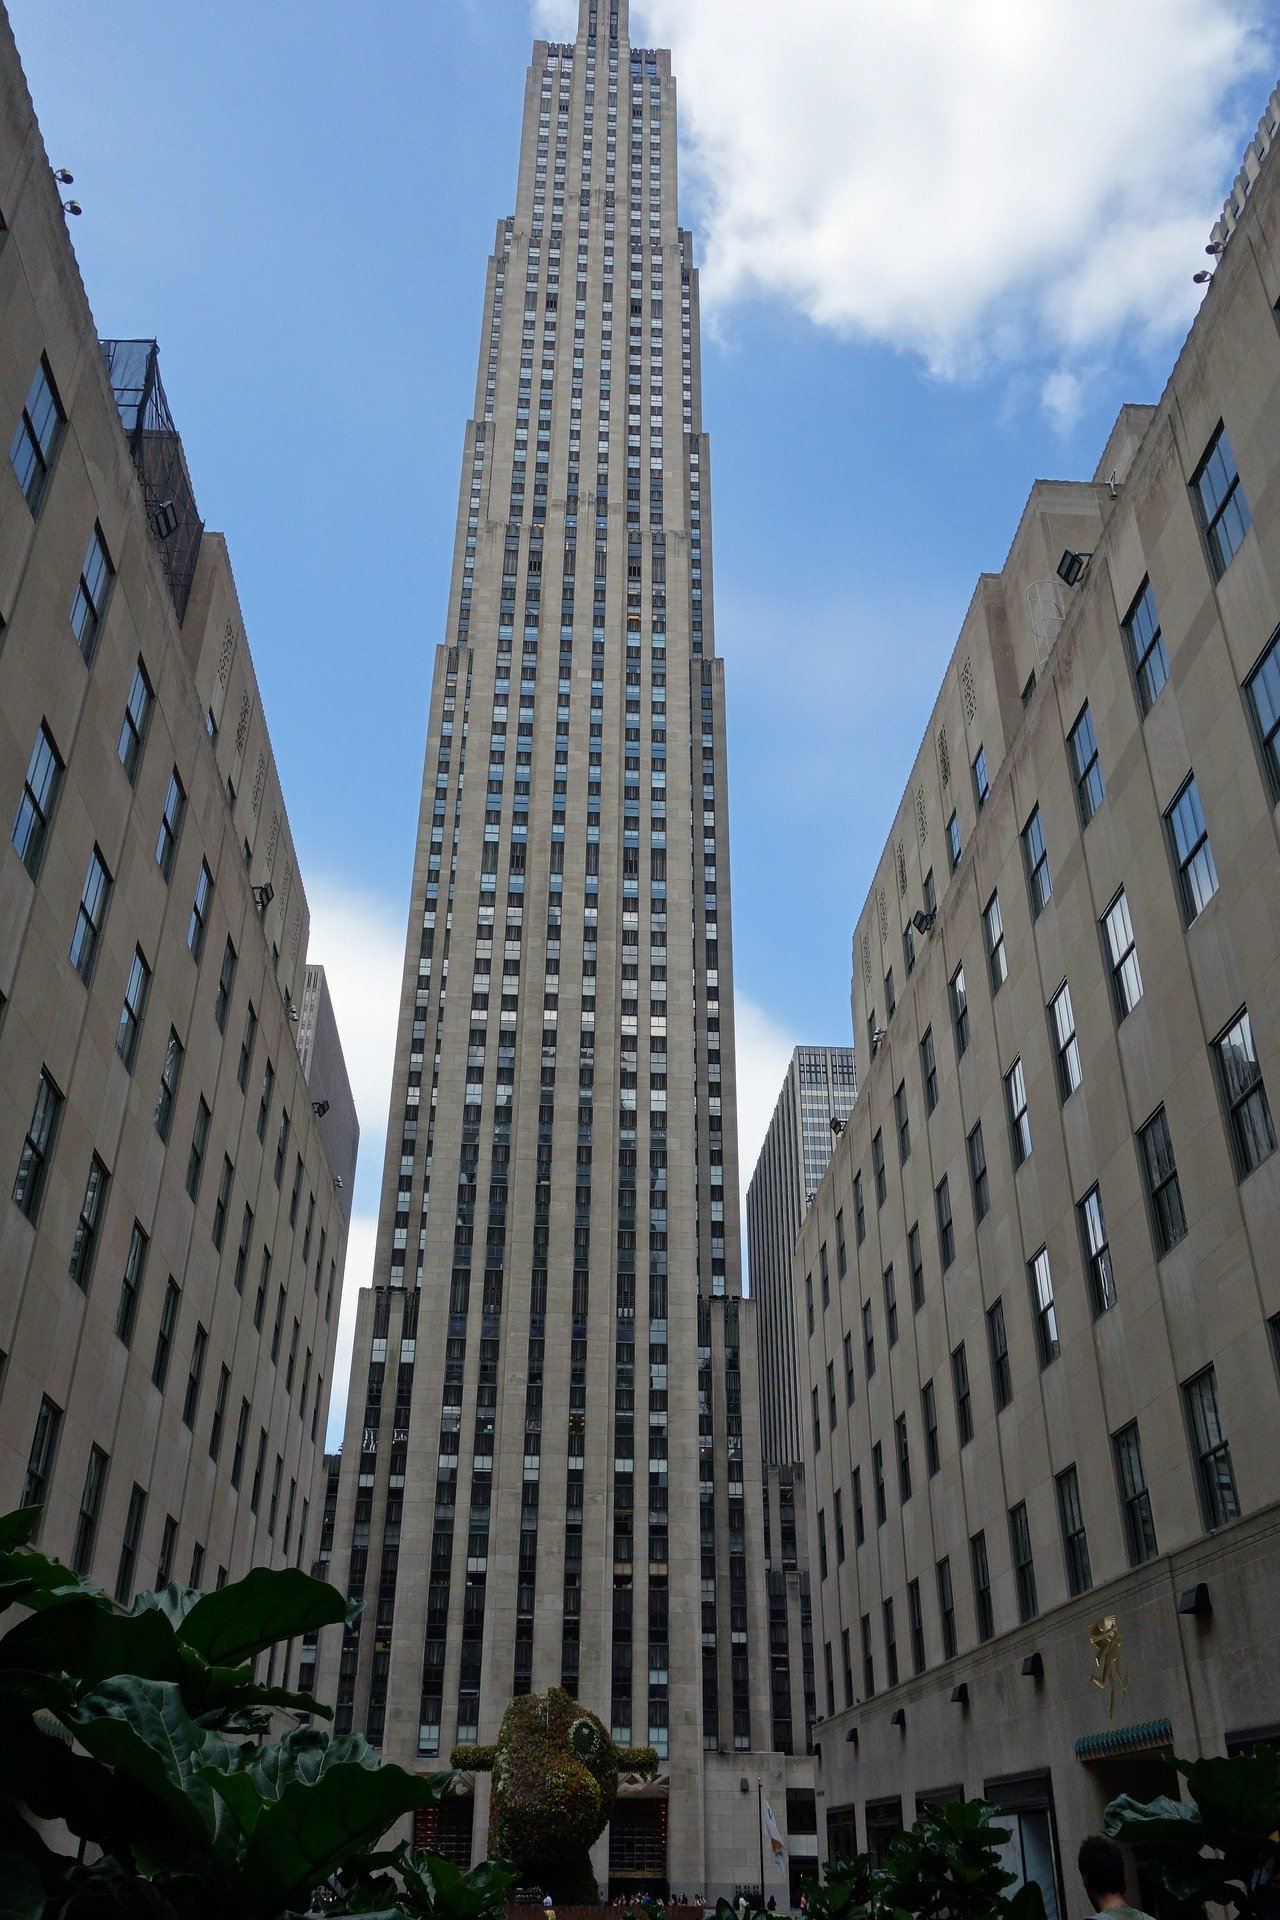 A tall building stands at the Rockefeller Center in New York City. | Photo: Pixabay